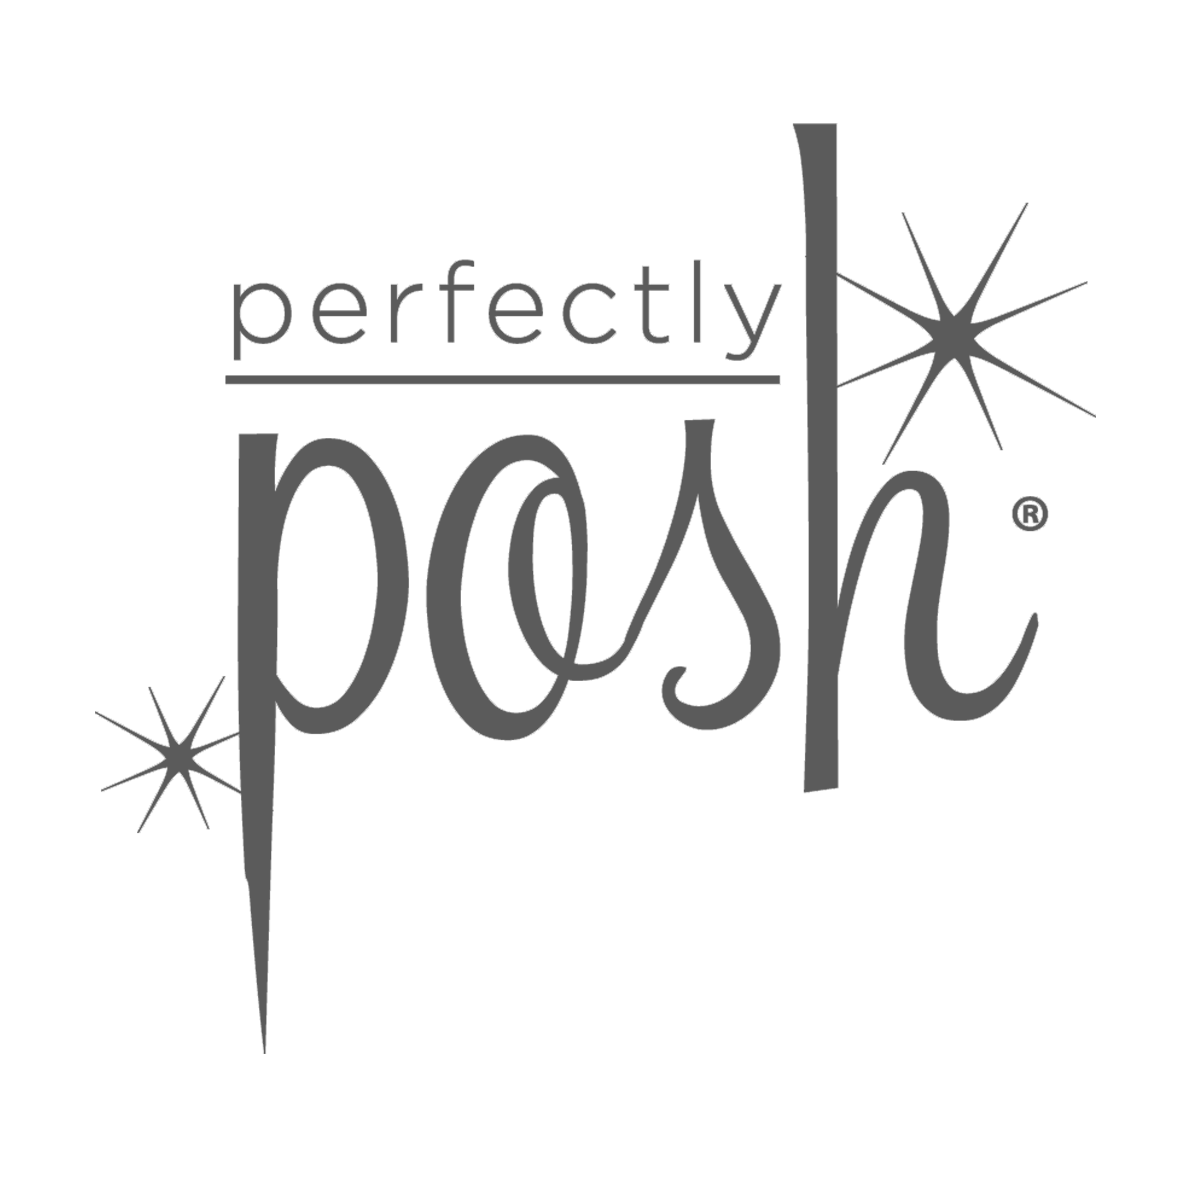 grey-perfectly-posh.png